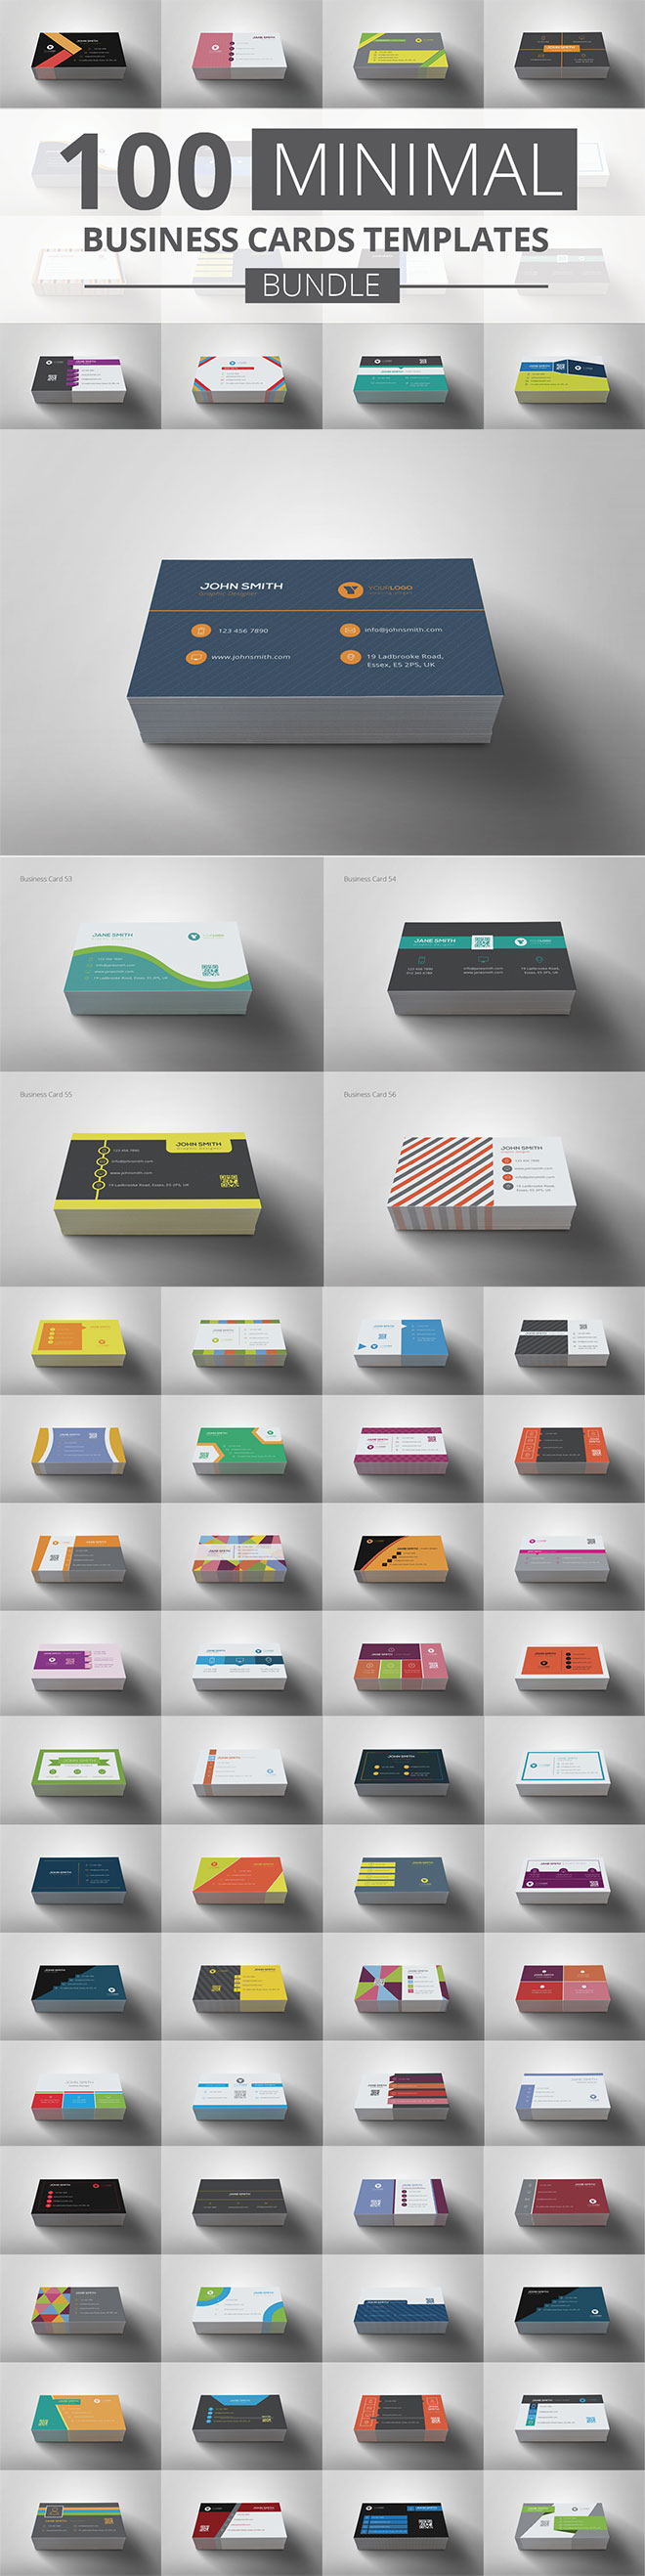 100 Business Card Templates